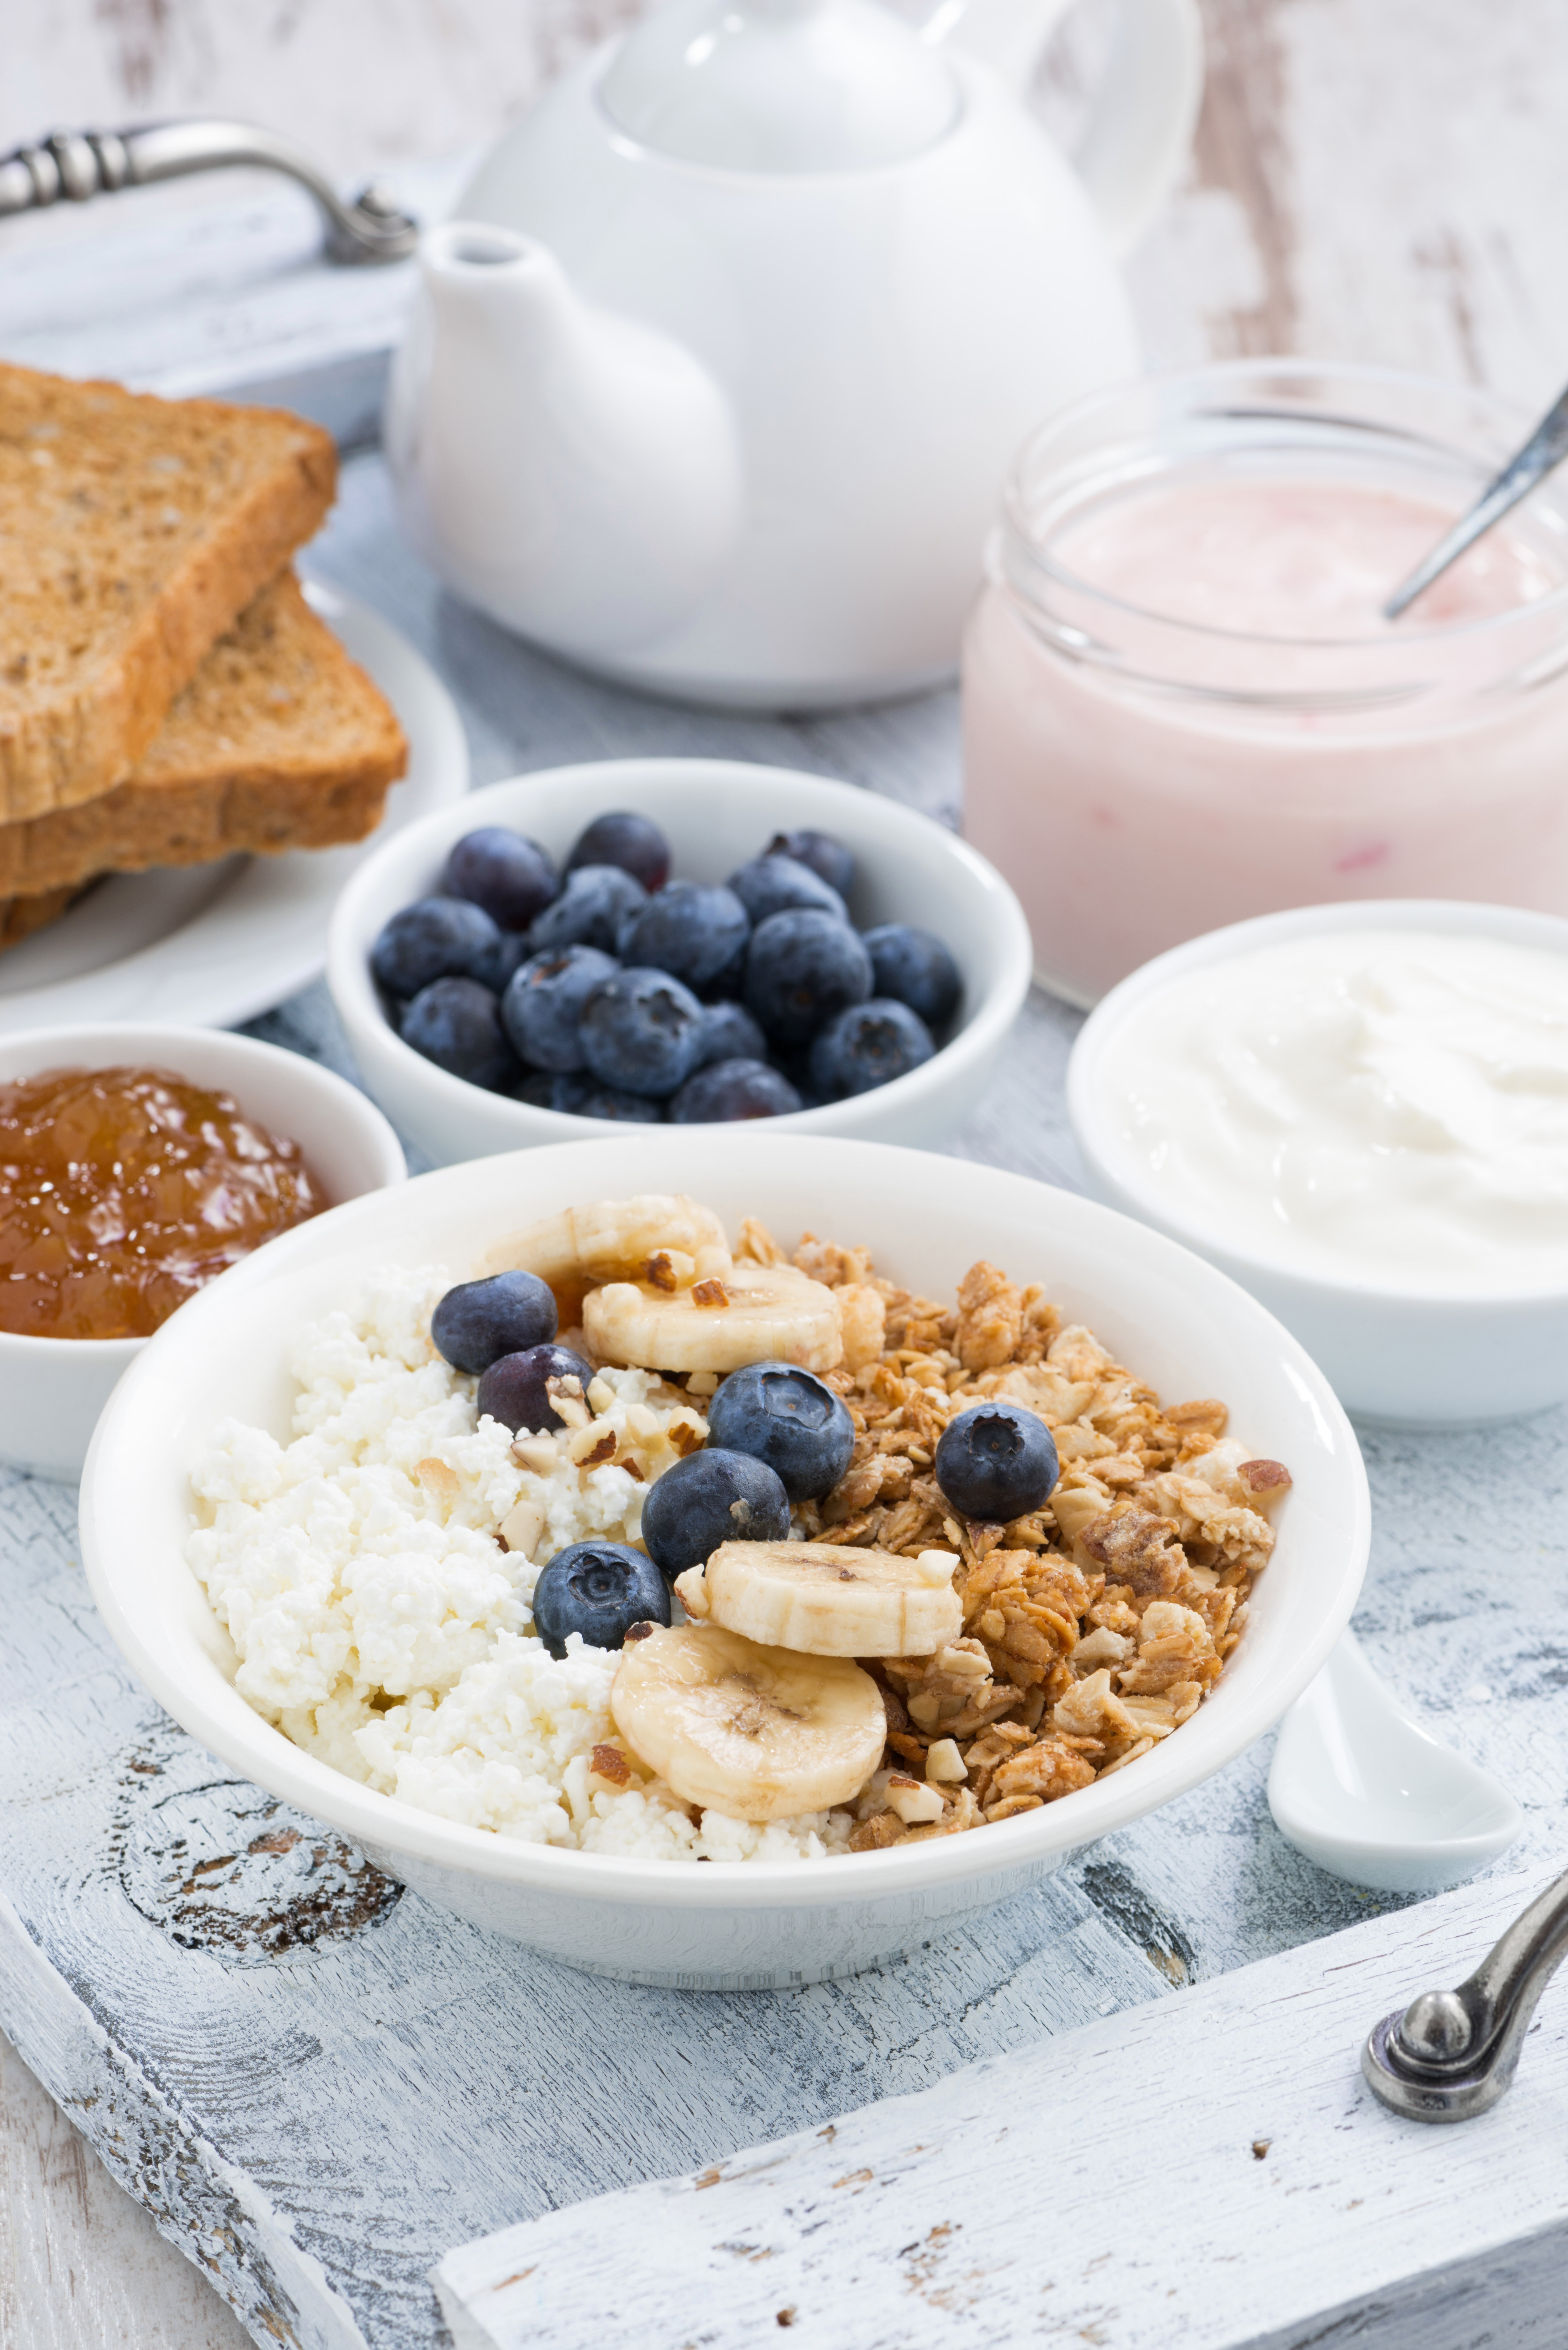 Breakfast cereal with blueberries, banana and yoghurt.jpg